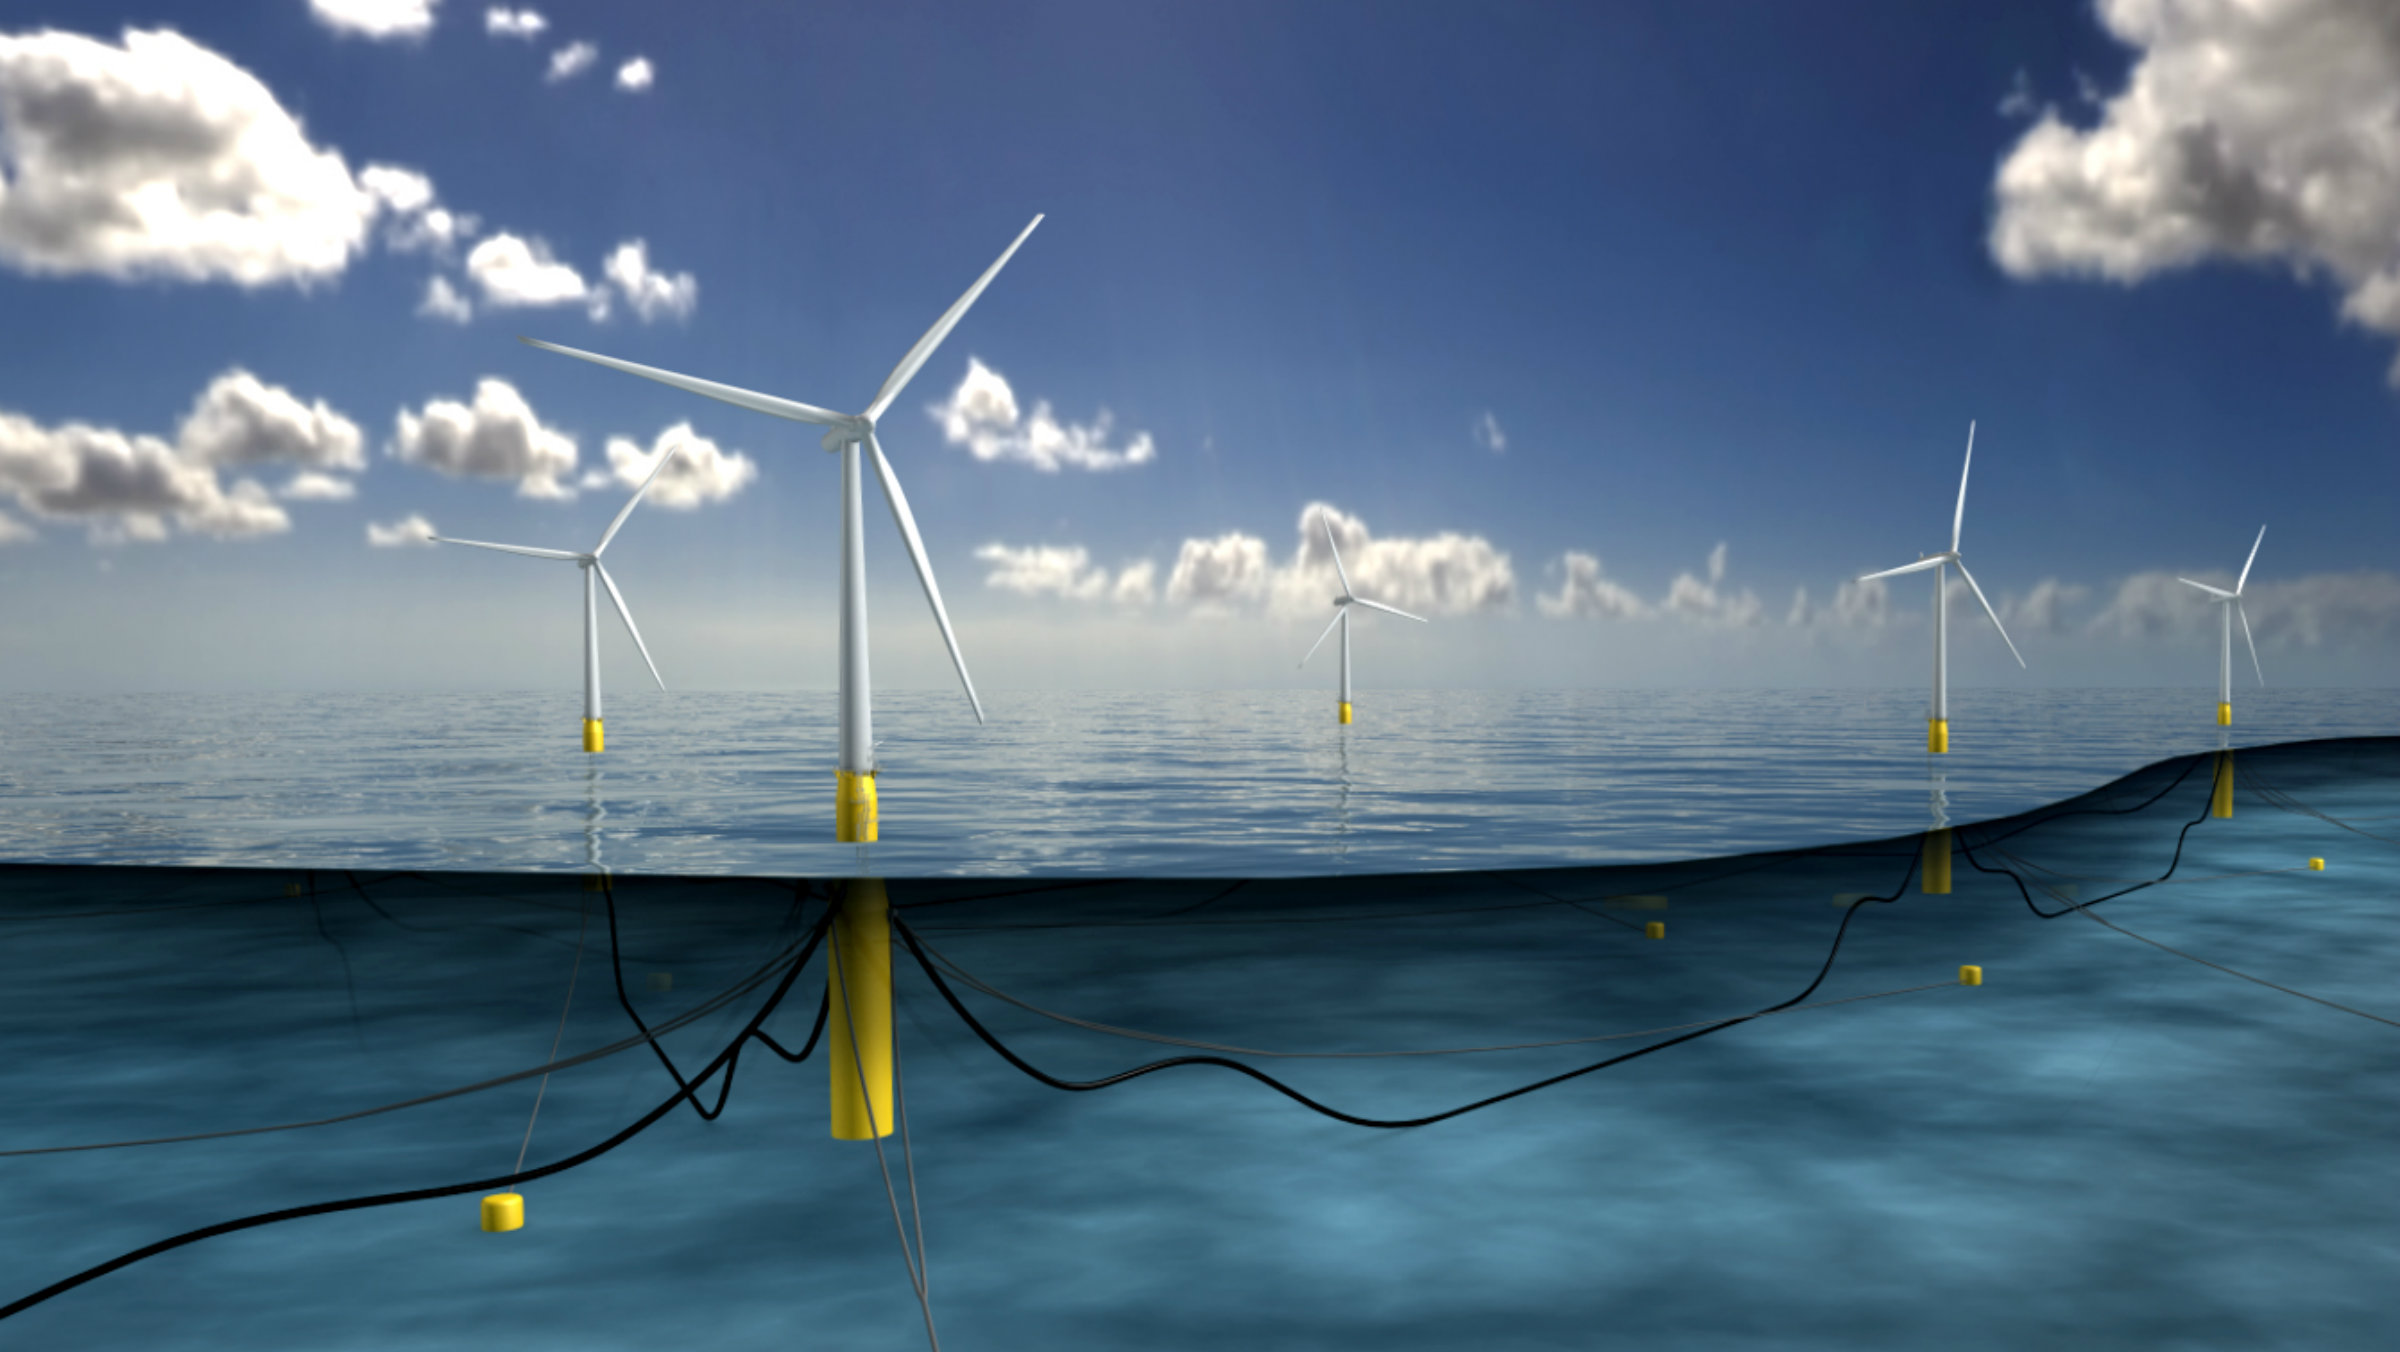 Hywind Scotland pilot floating wind park overview